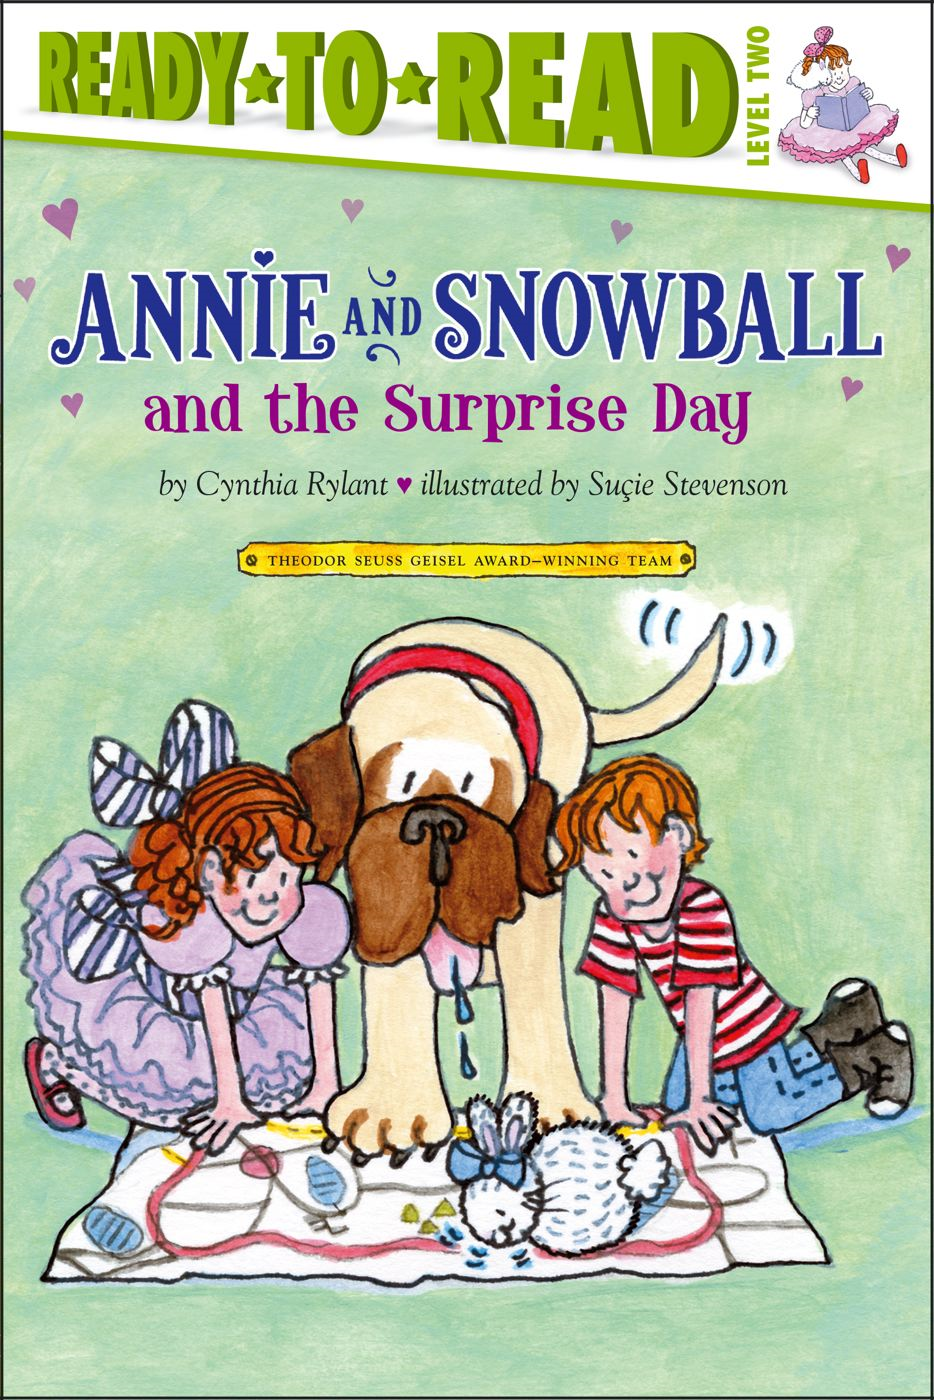 Annie and Snowball and the Surprise Day By: Cynthia Rylant,Suçie Stevenson